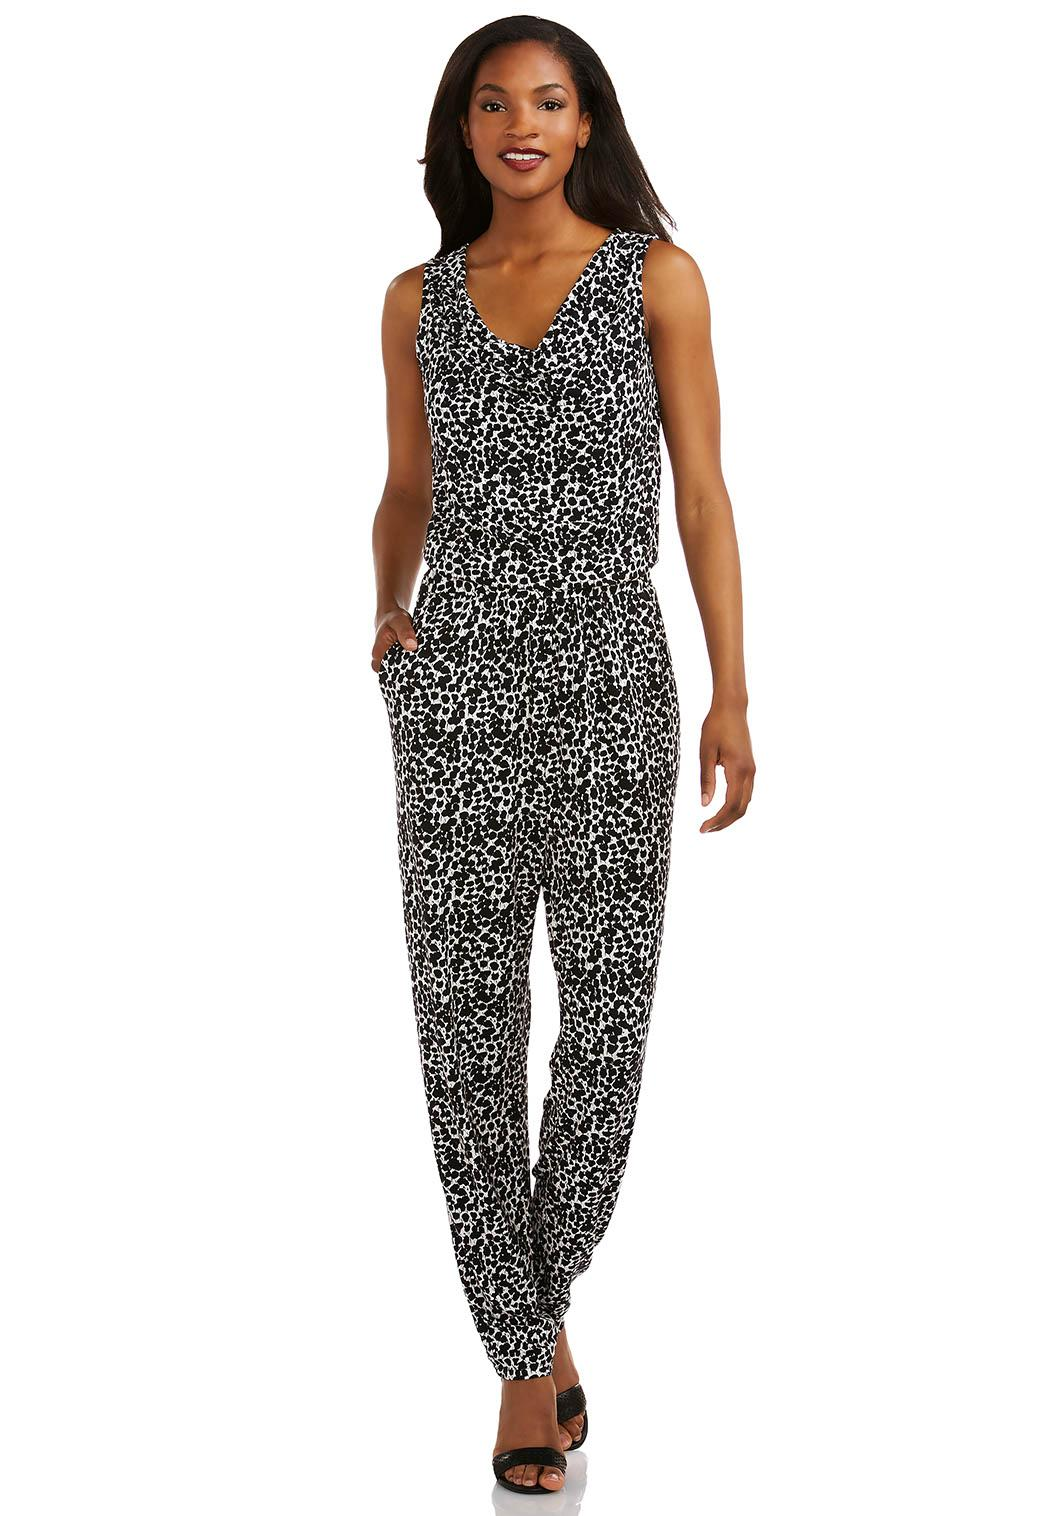 Cato Plus Size Fashion Catalog Speckled Print Jumpsuit Plus